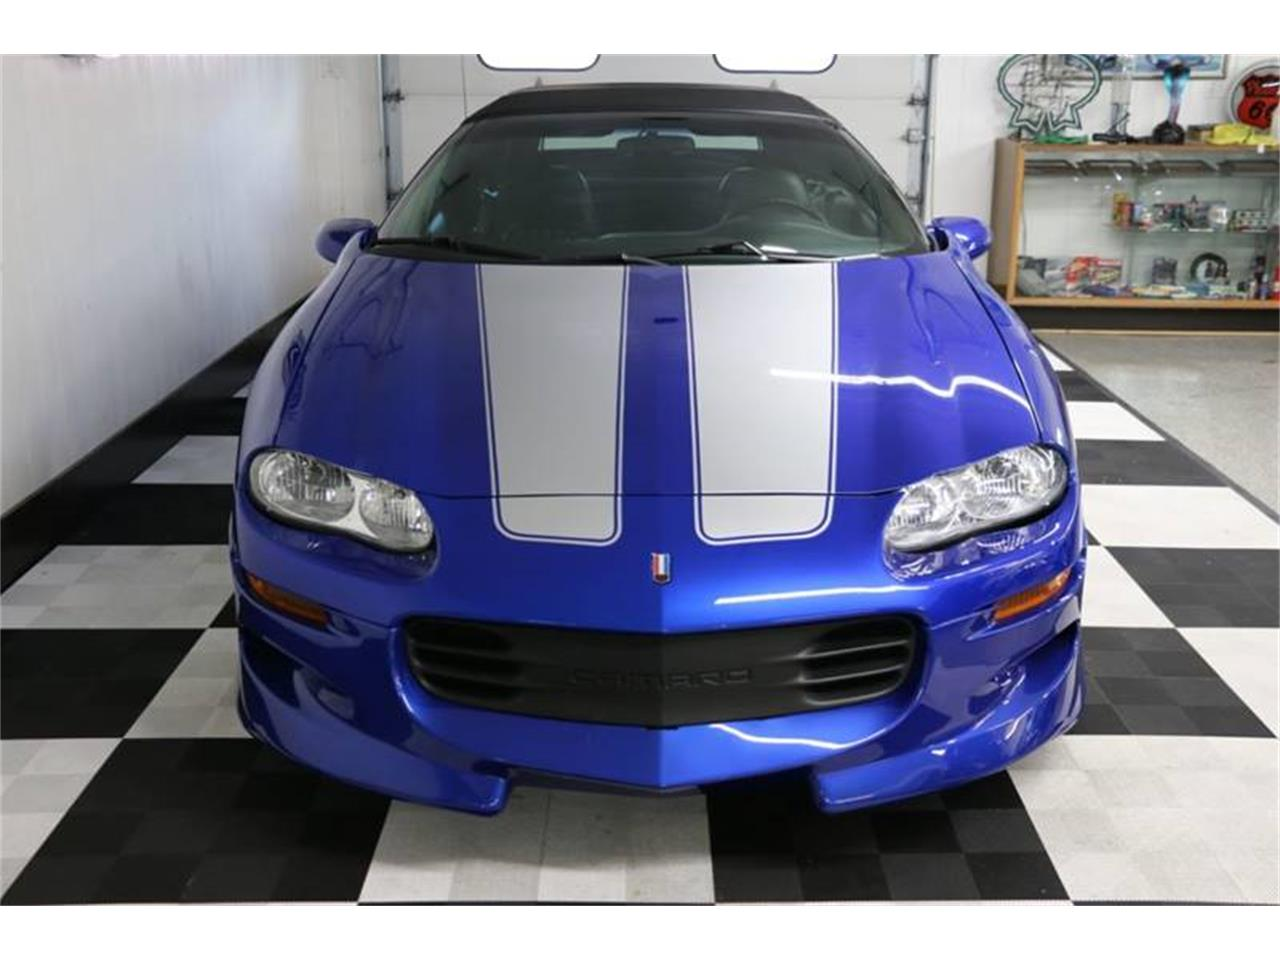 Large Picture of 2002 Camaro located in Wisconsin - $18,995.00 Offered by Kuyoth's Klassics - QY5C